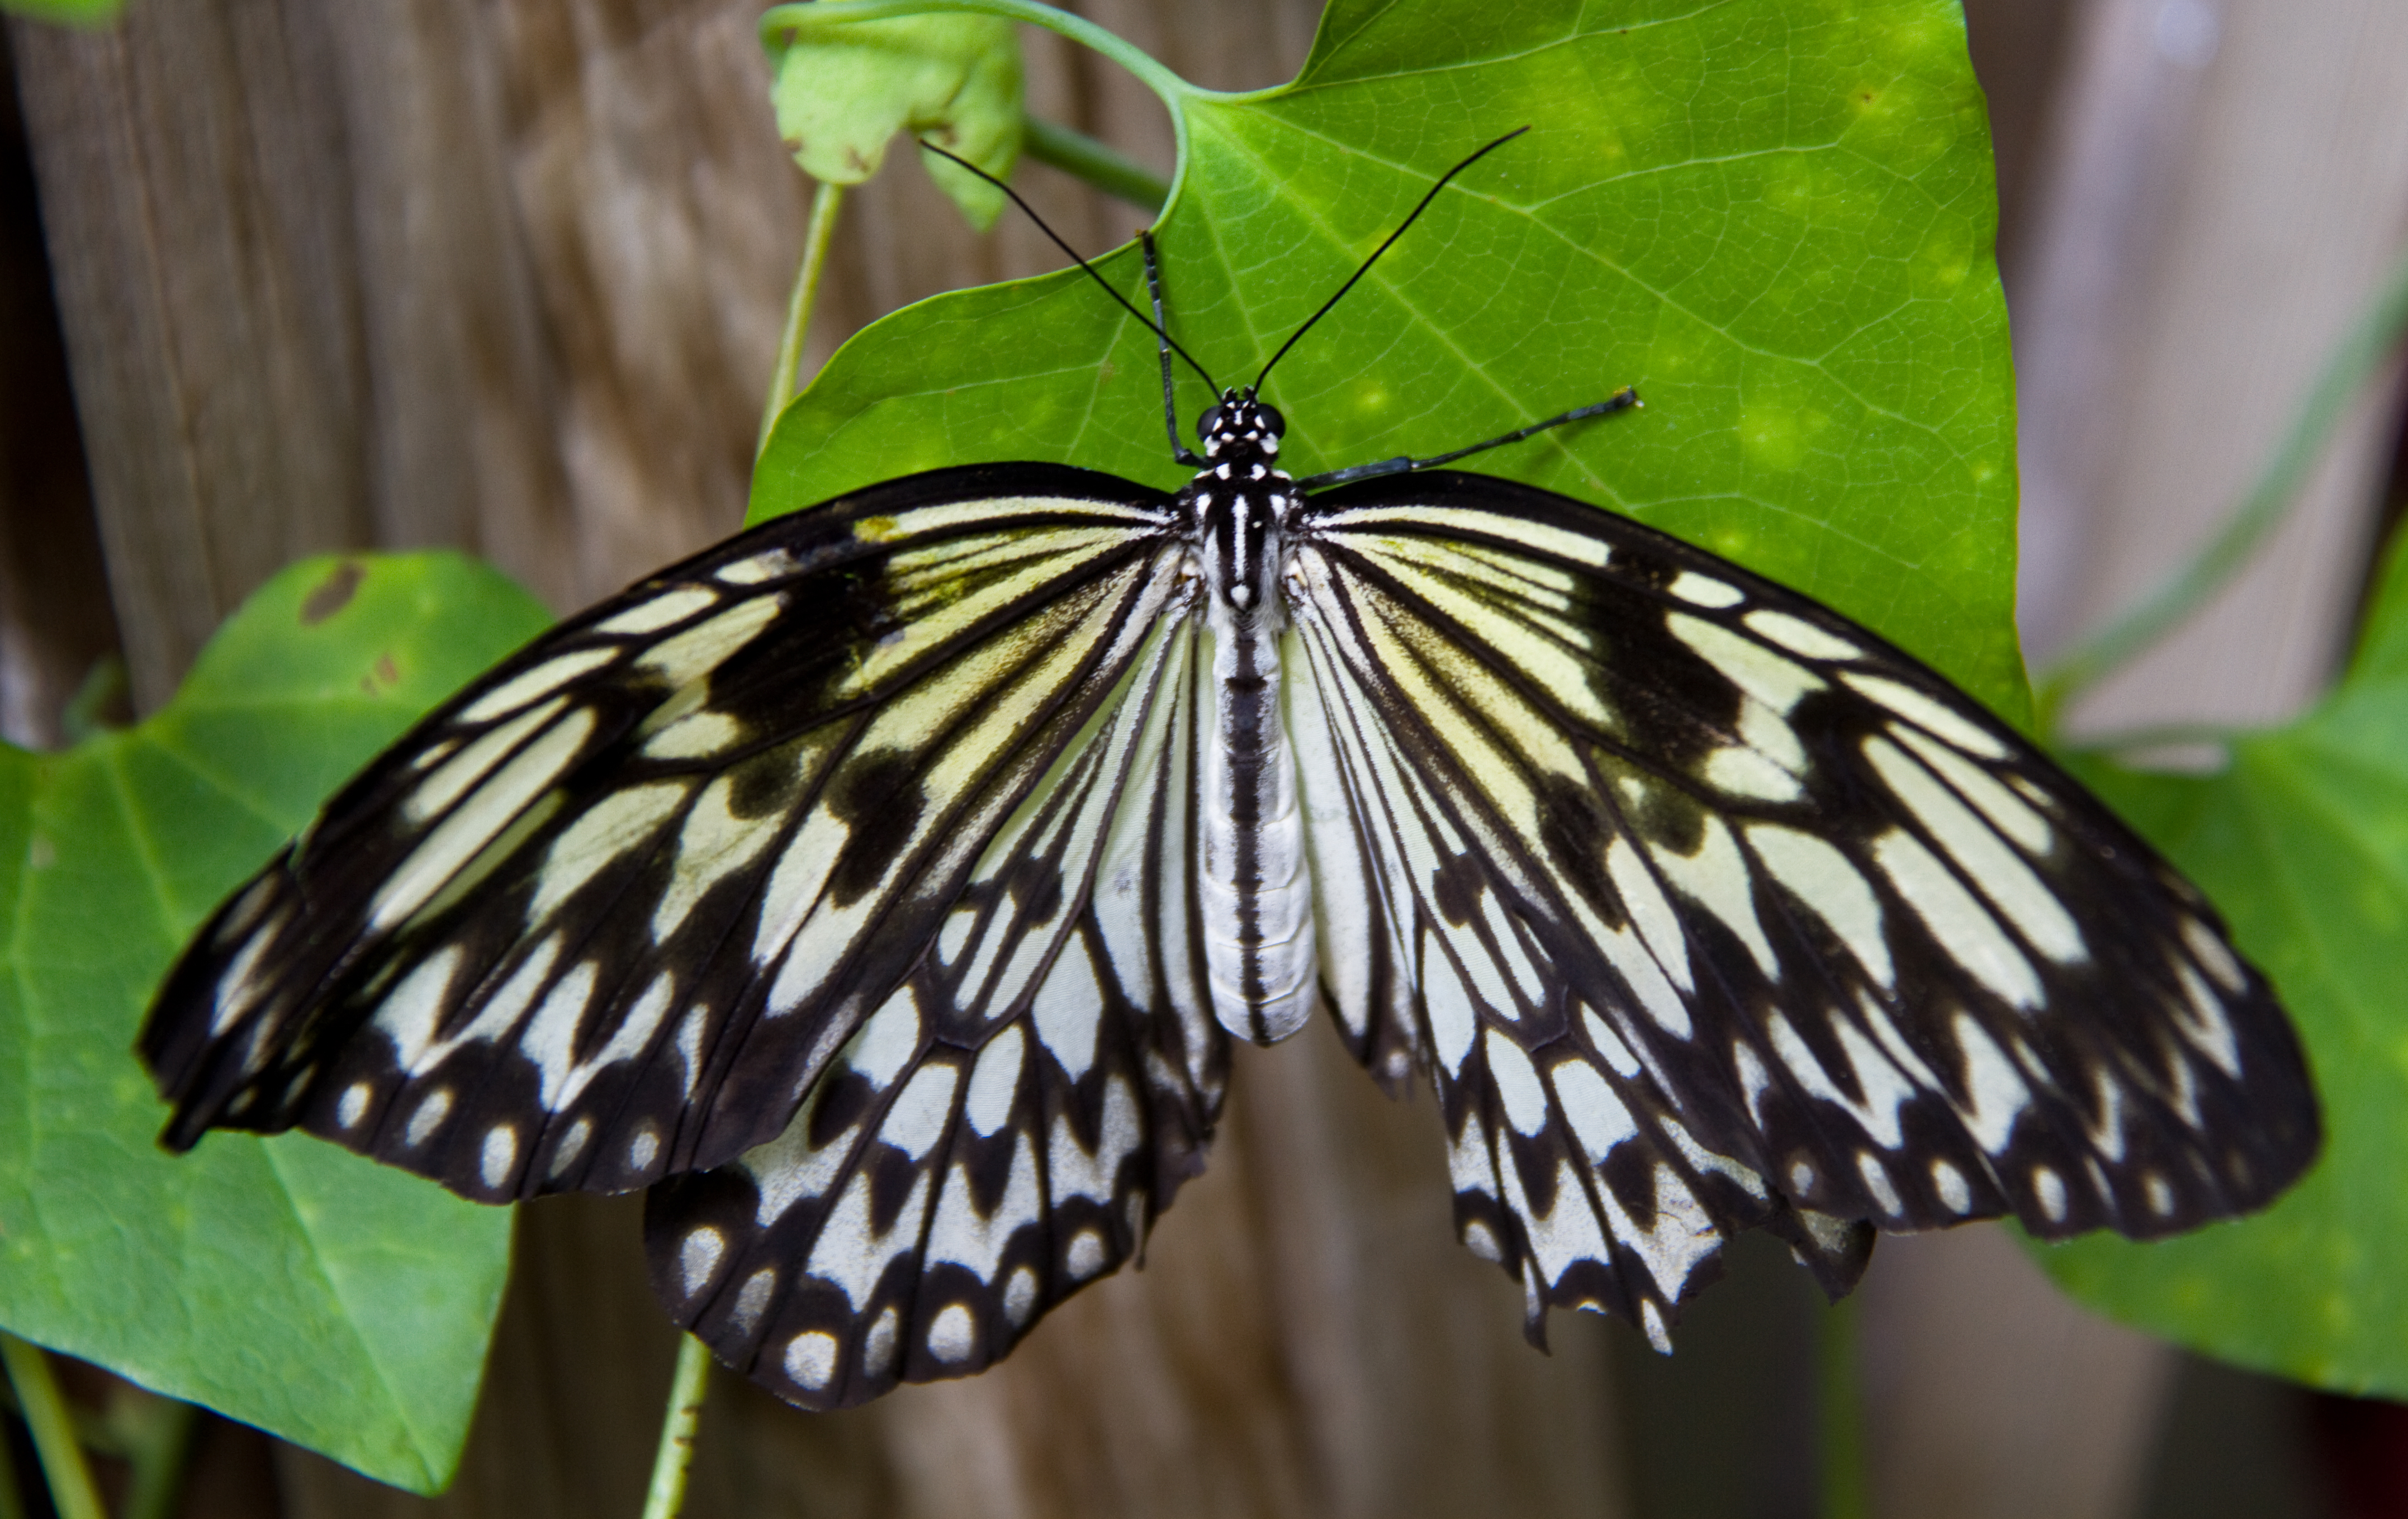 Black And White Butterfly Brush Footed Butterfly 1854303 Hd Wallpaper Backgrounds Download